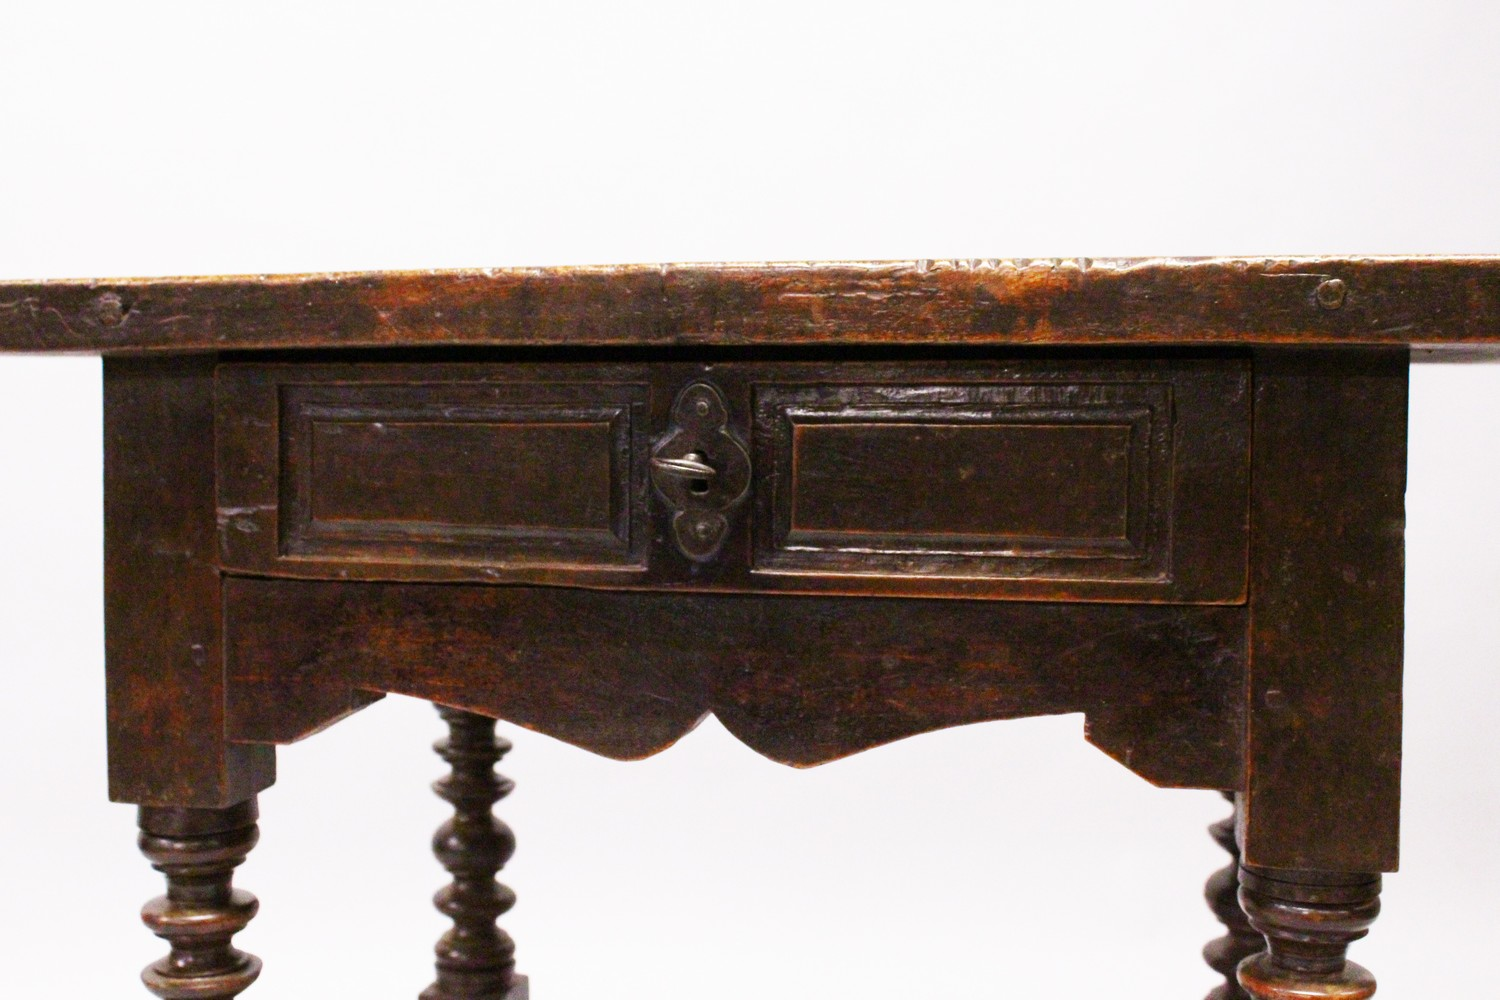 AN 18TH CENTURY SPANISH SIDE TABLE, with solid walnut top, single frieze drawer with iron lock, - Image 3 of 13